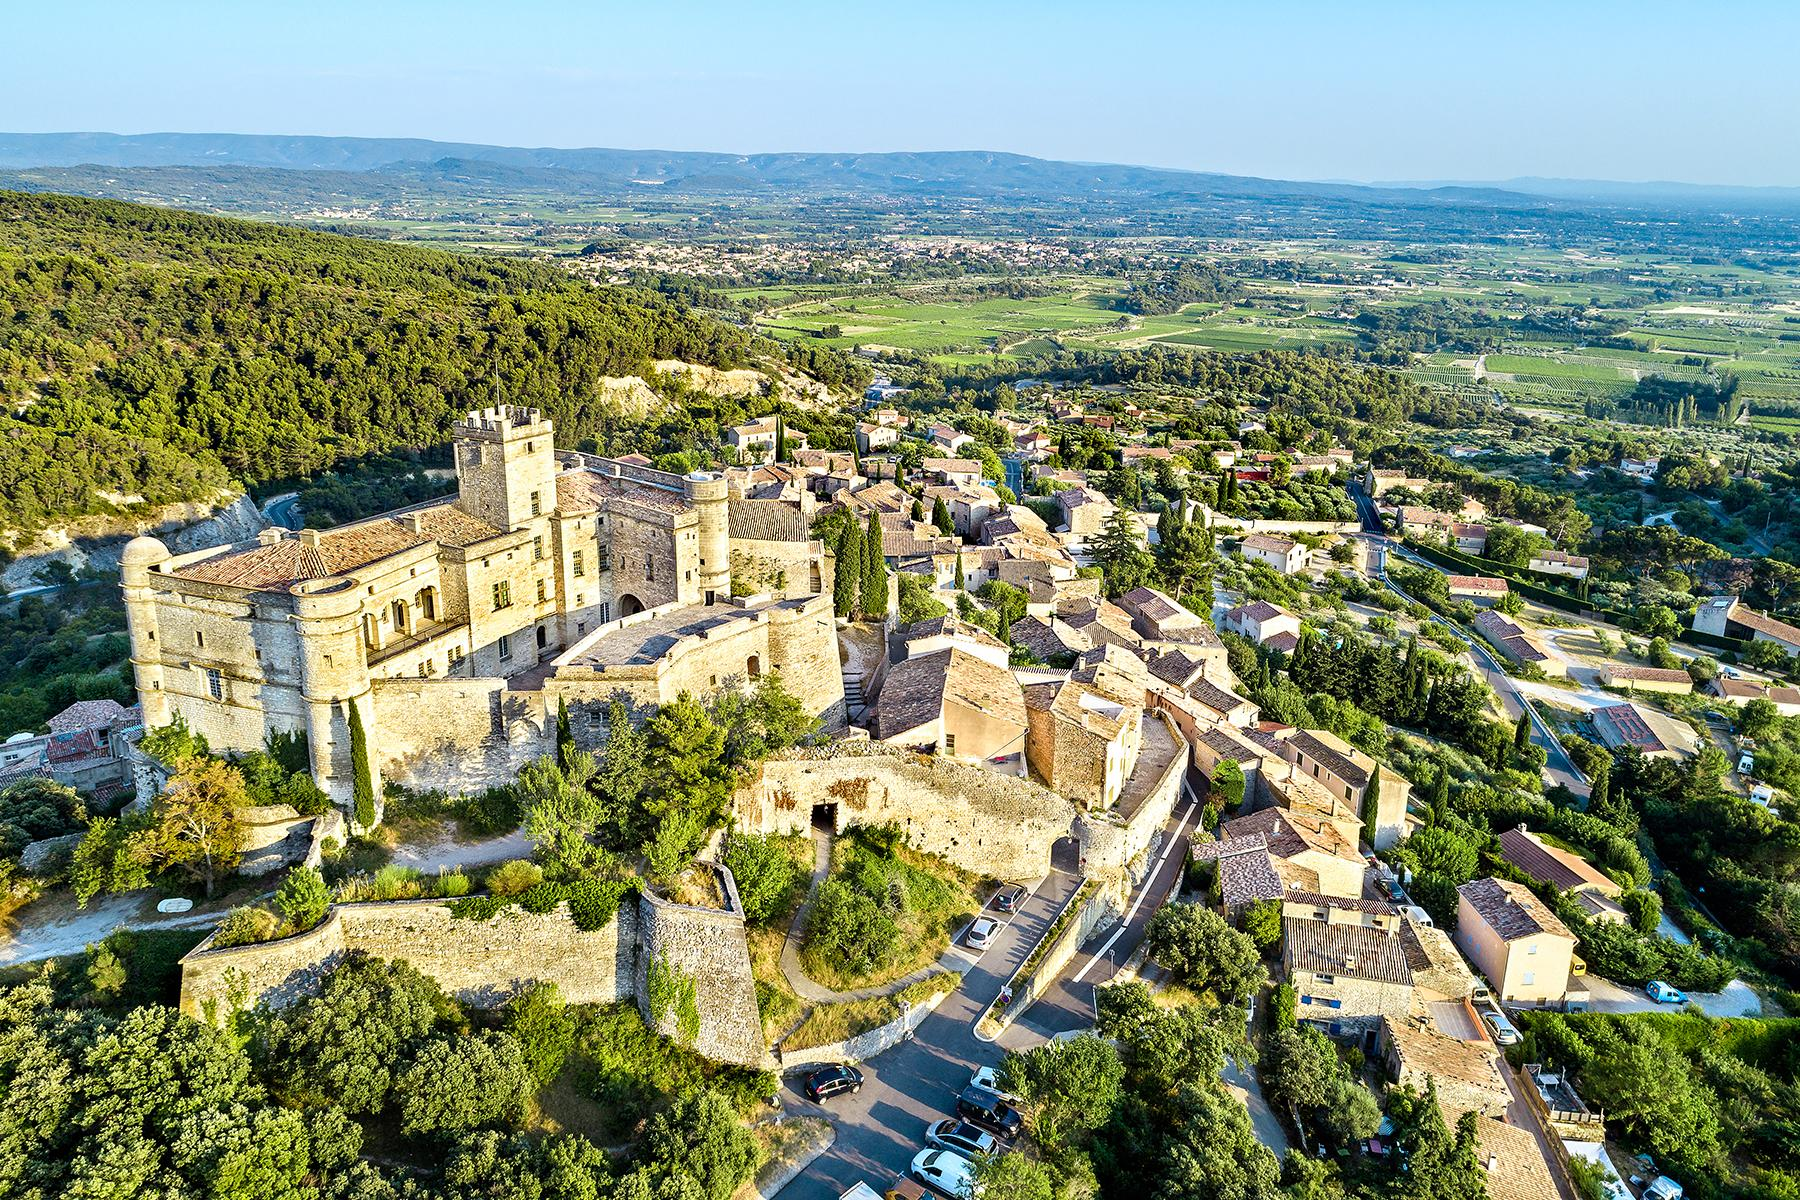 Map Of Provence France With Cities.15 Must See Towns In Provence France